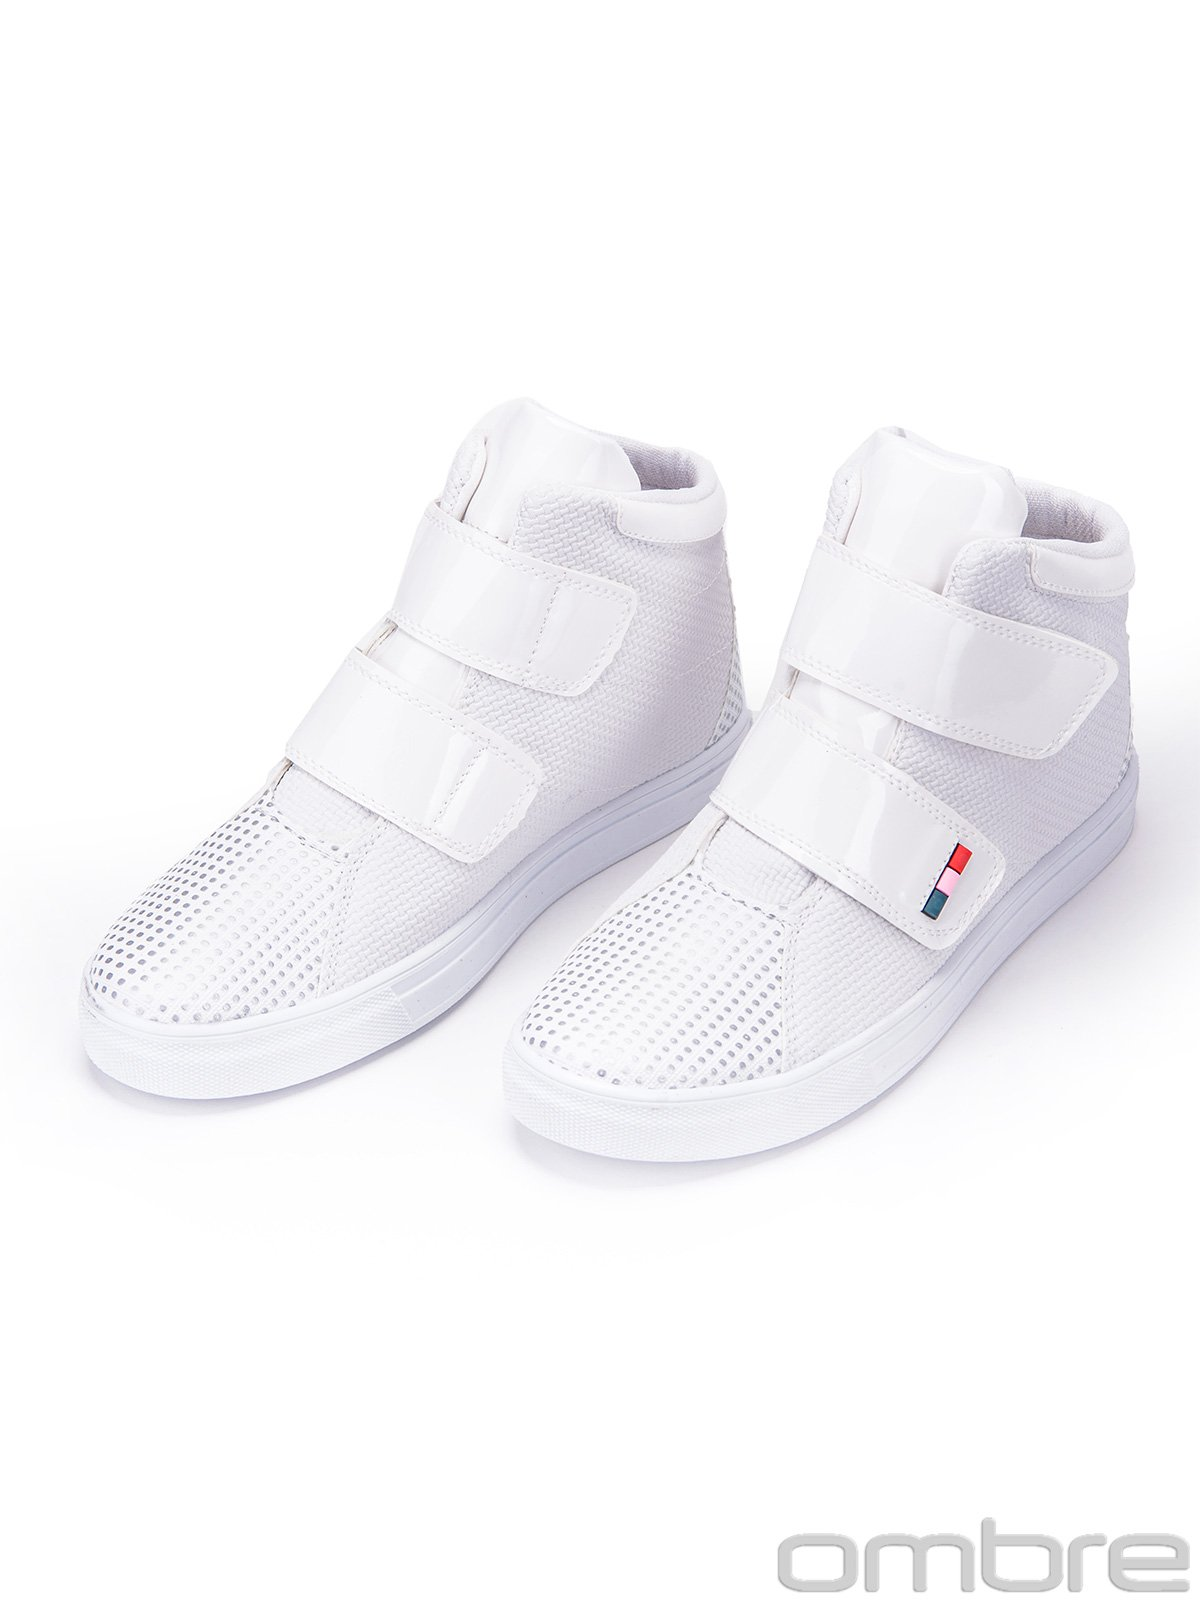 Men's ankle-high trainers T039 - white